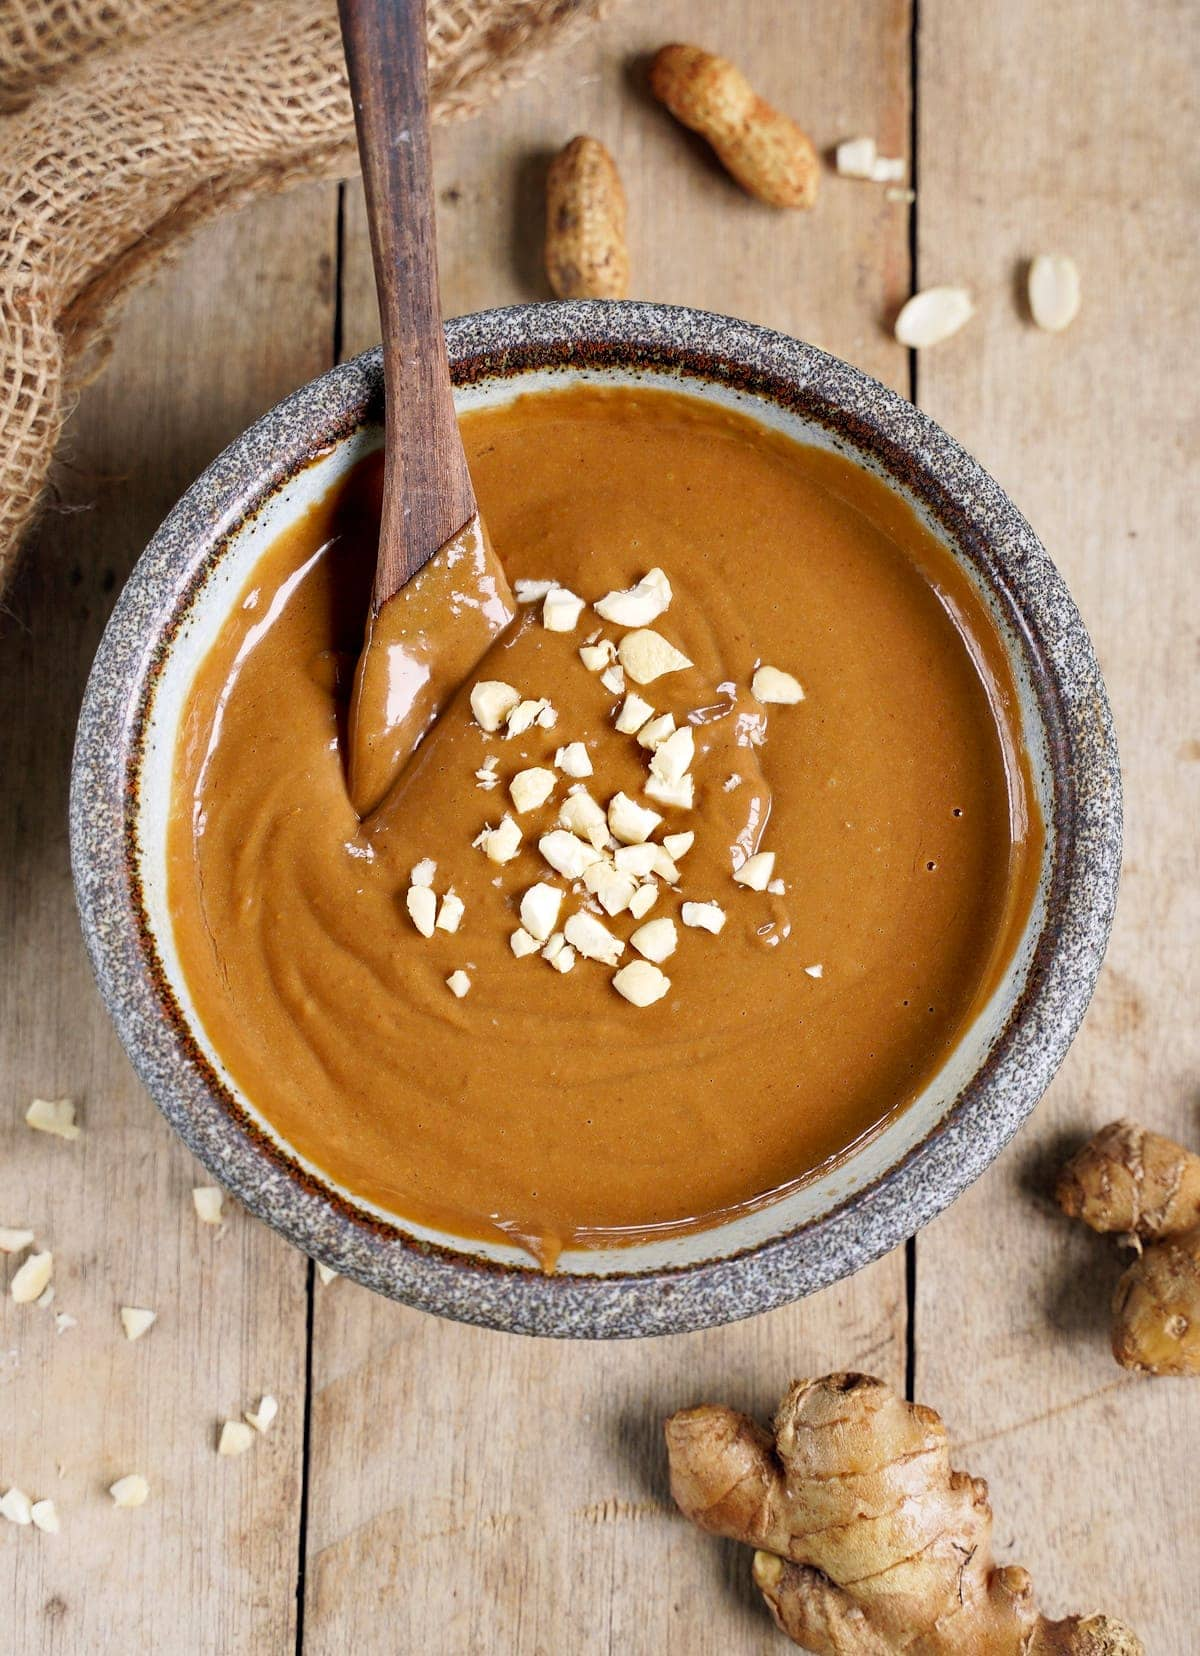 brown sauce with peanuts in bowl with wooden spoon